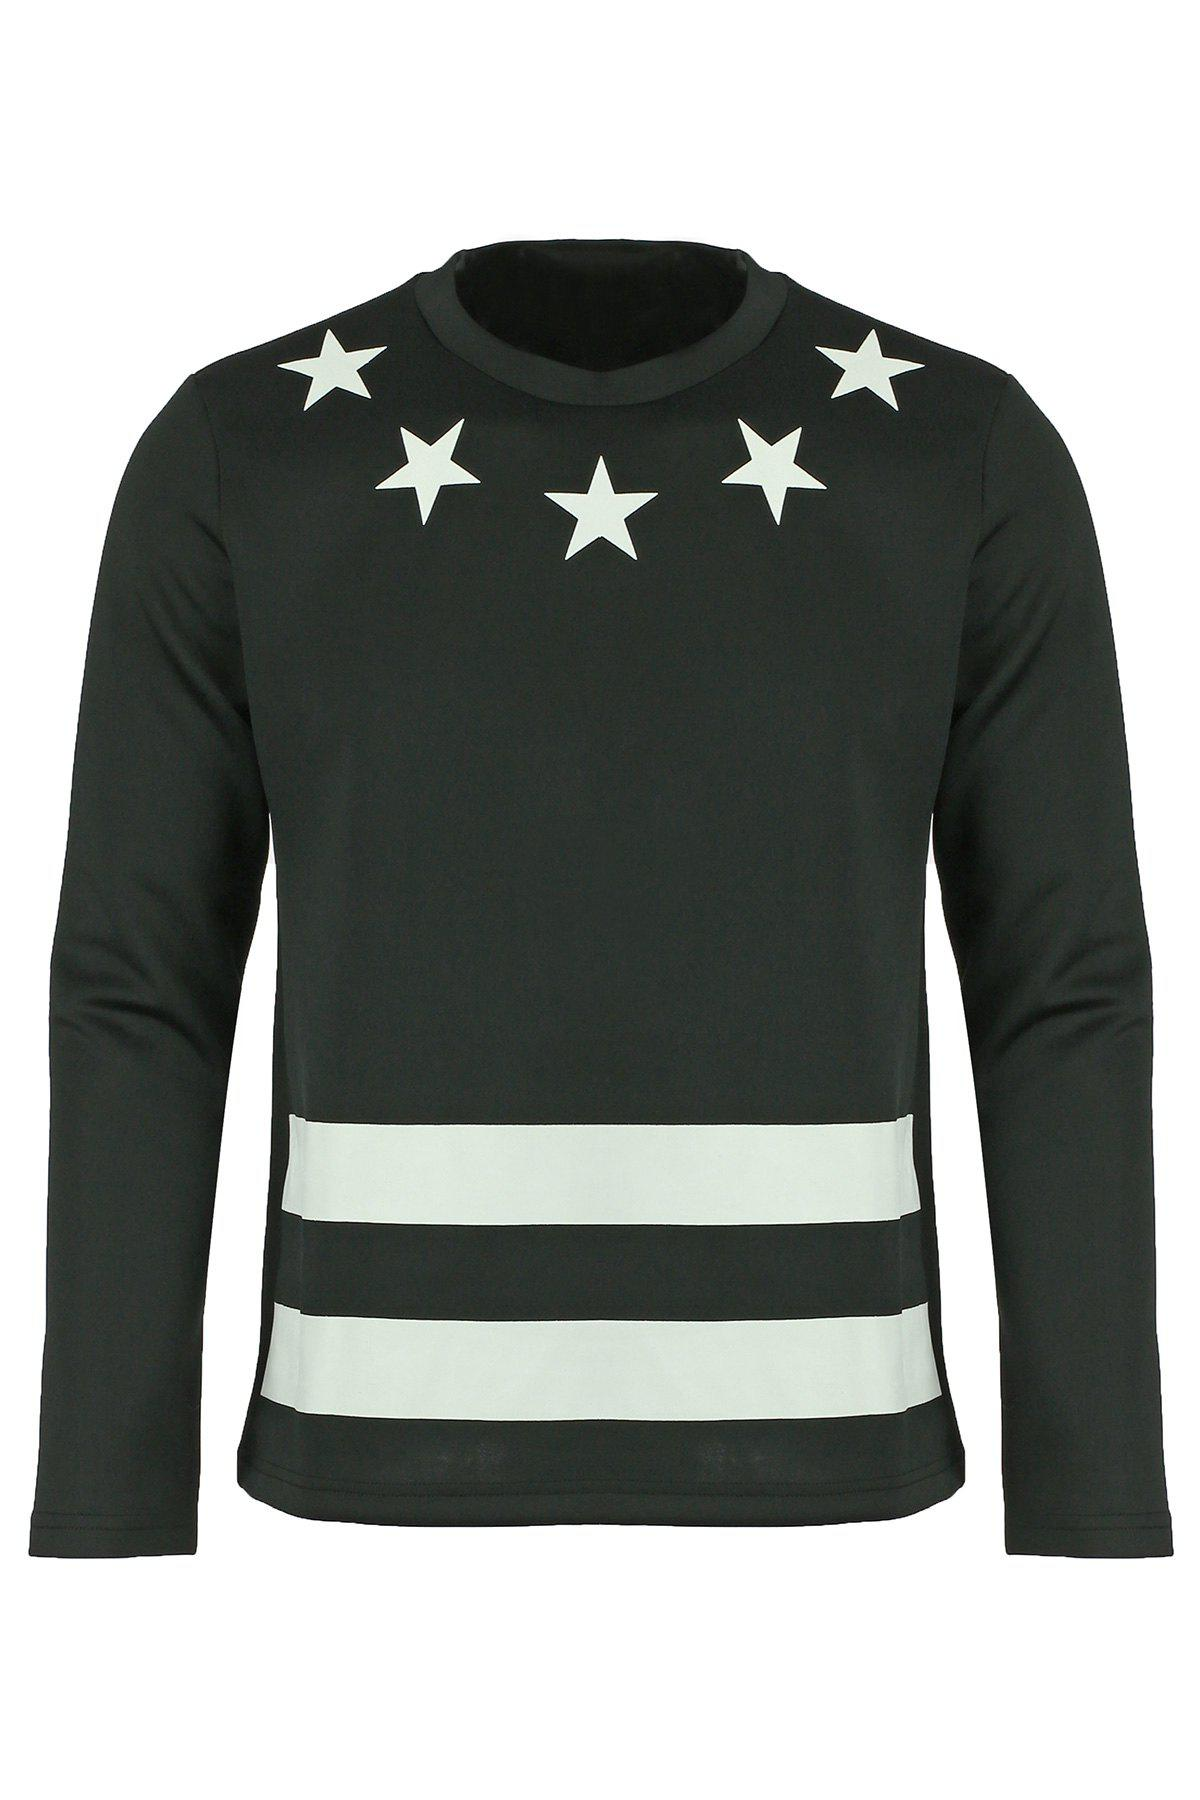 Round Neck Letters and Star Print Long Sleeve Men's Sweatshirt - BLACK L